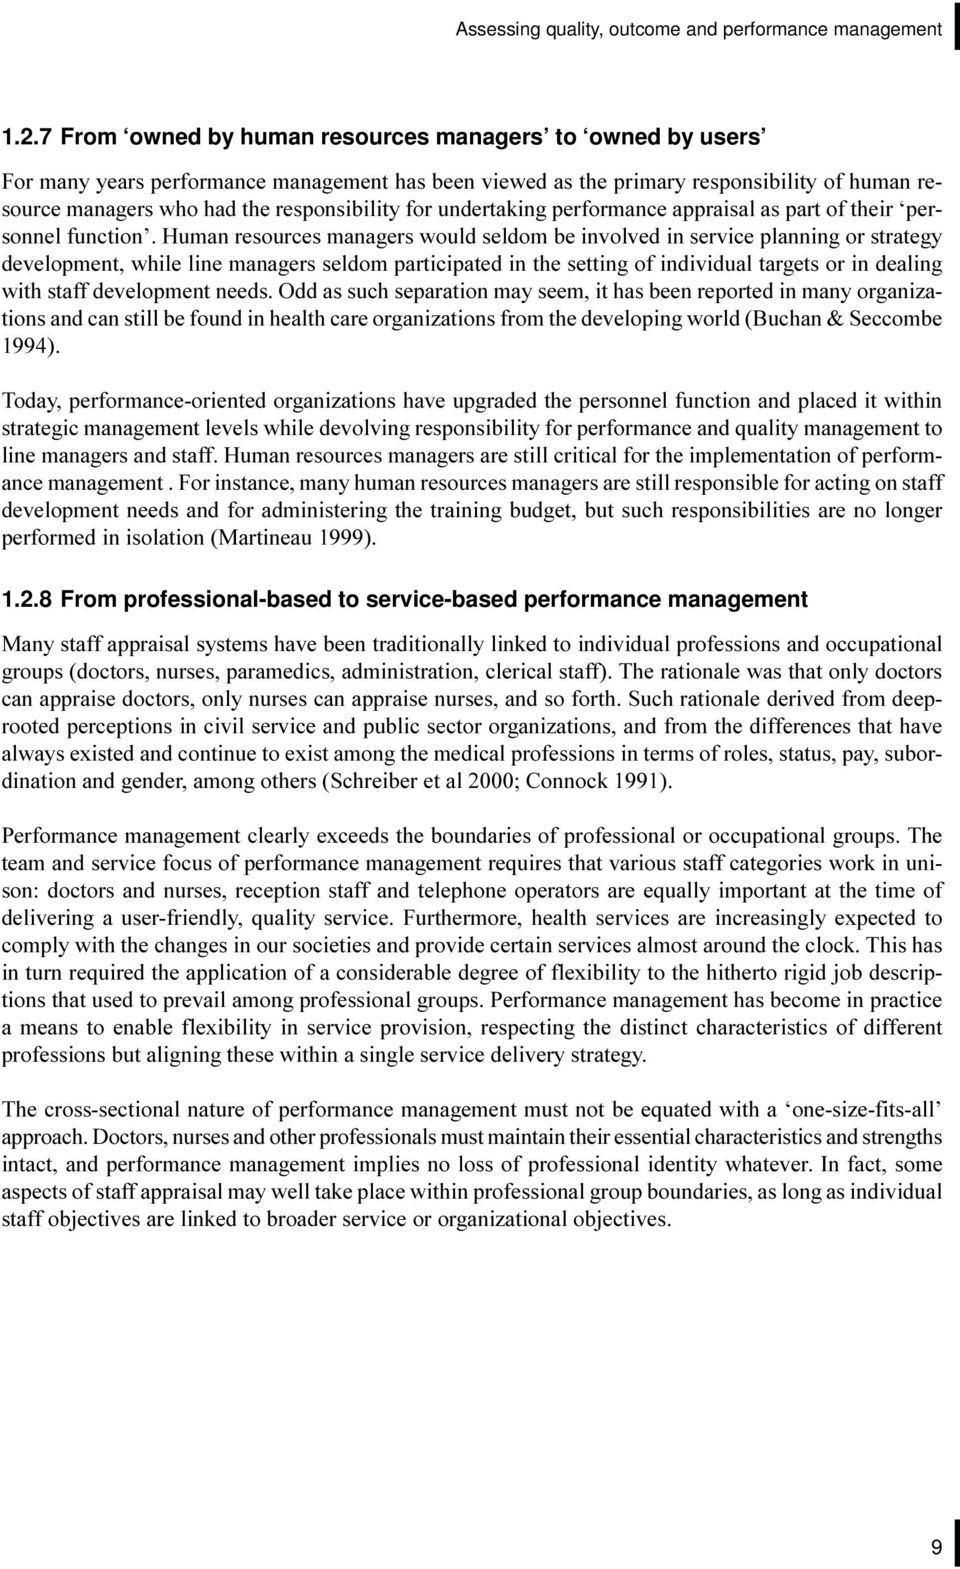 for undertaking performance appraisal as part of their personnel function Human resources managers would seldom be involved in service planning or strategy development, while line managers seldom